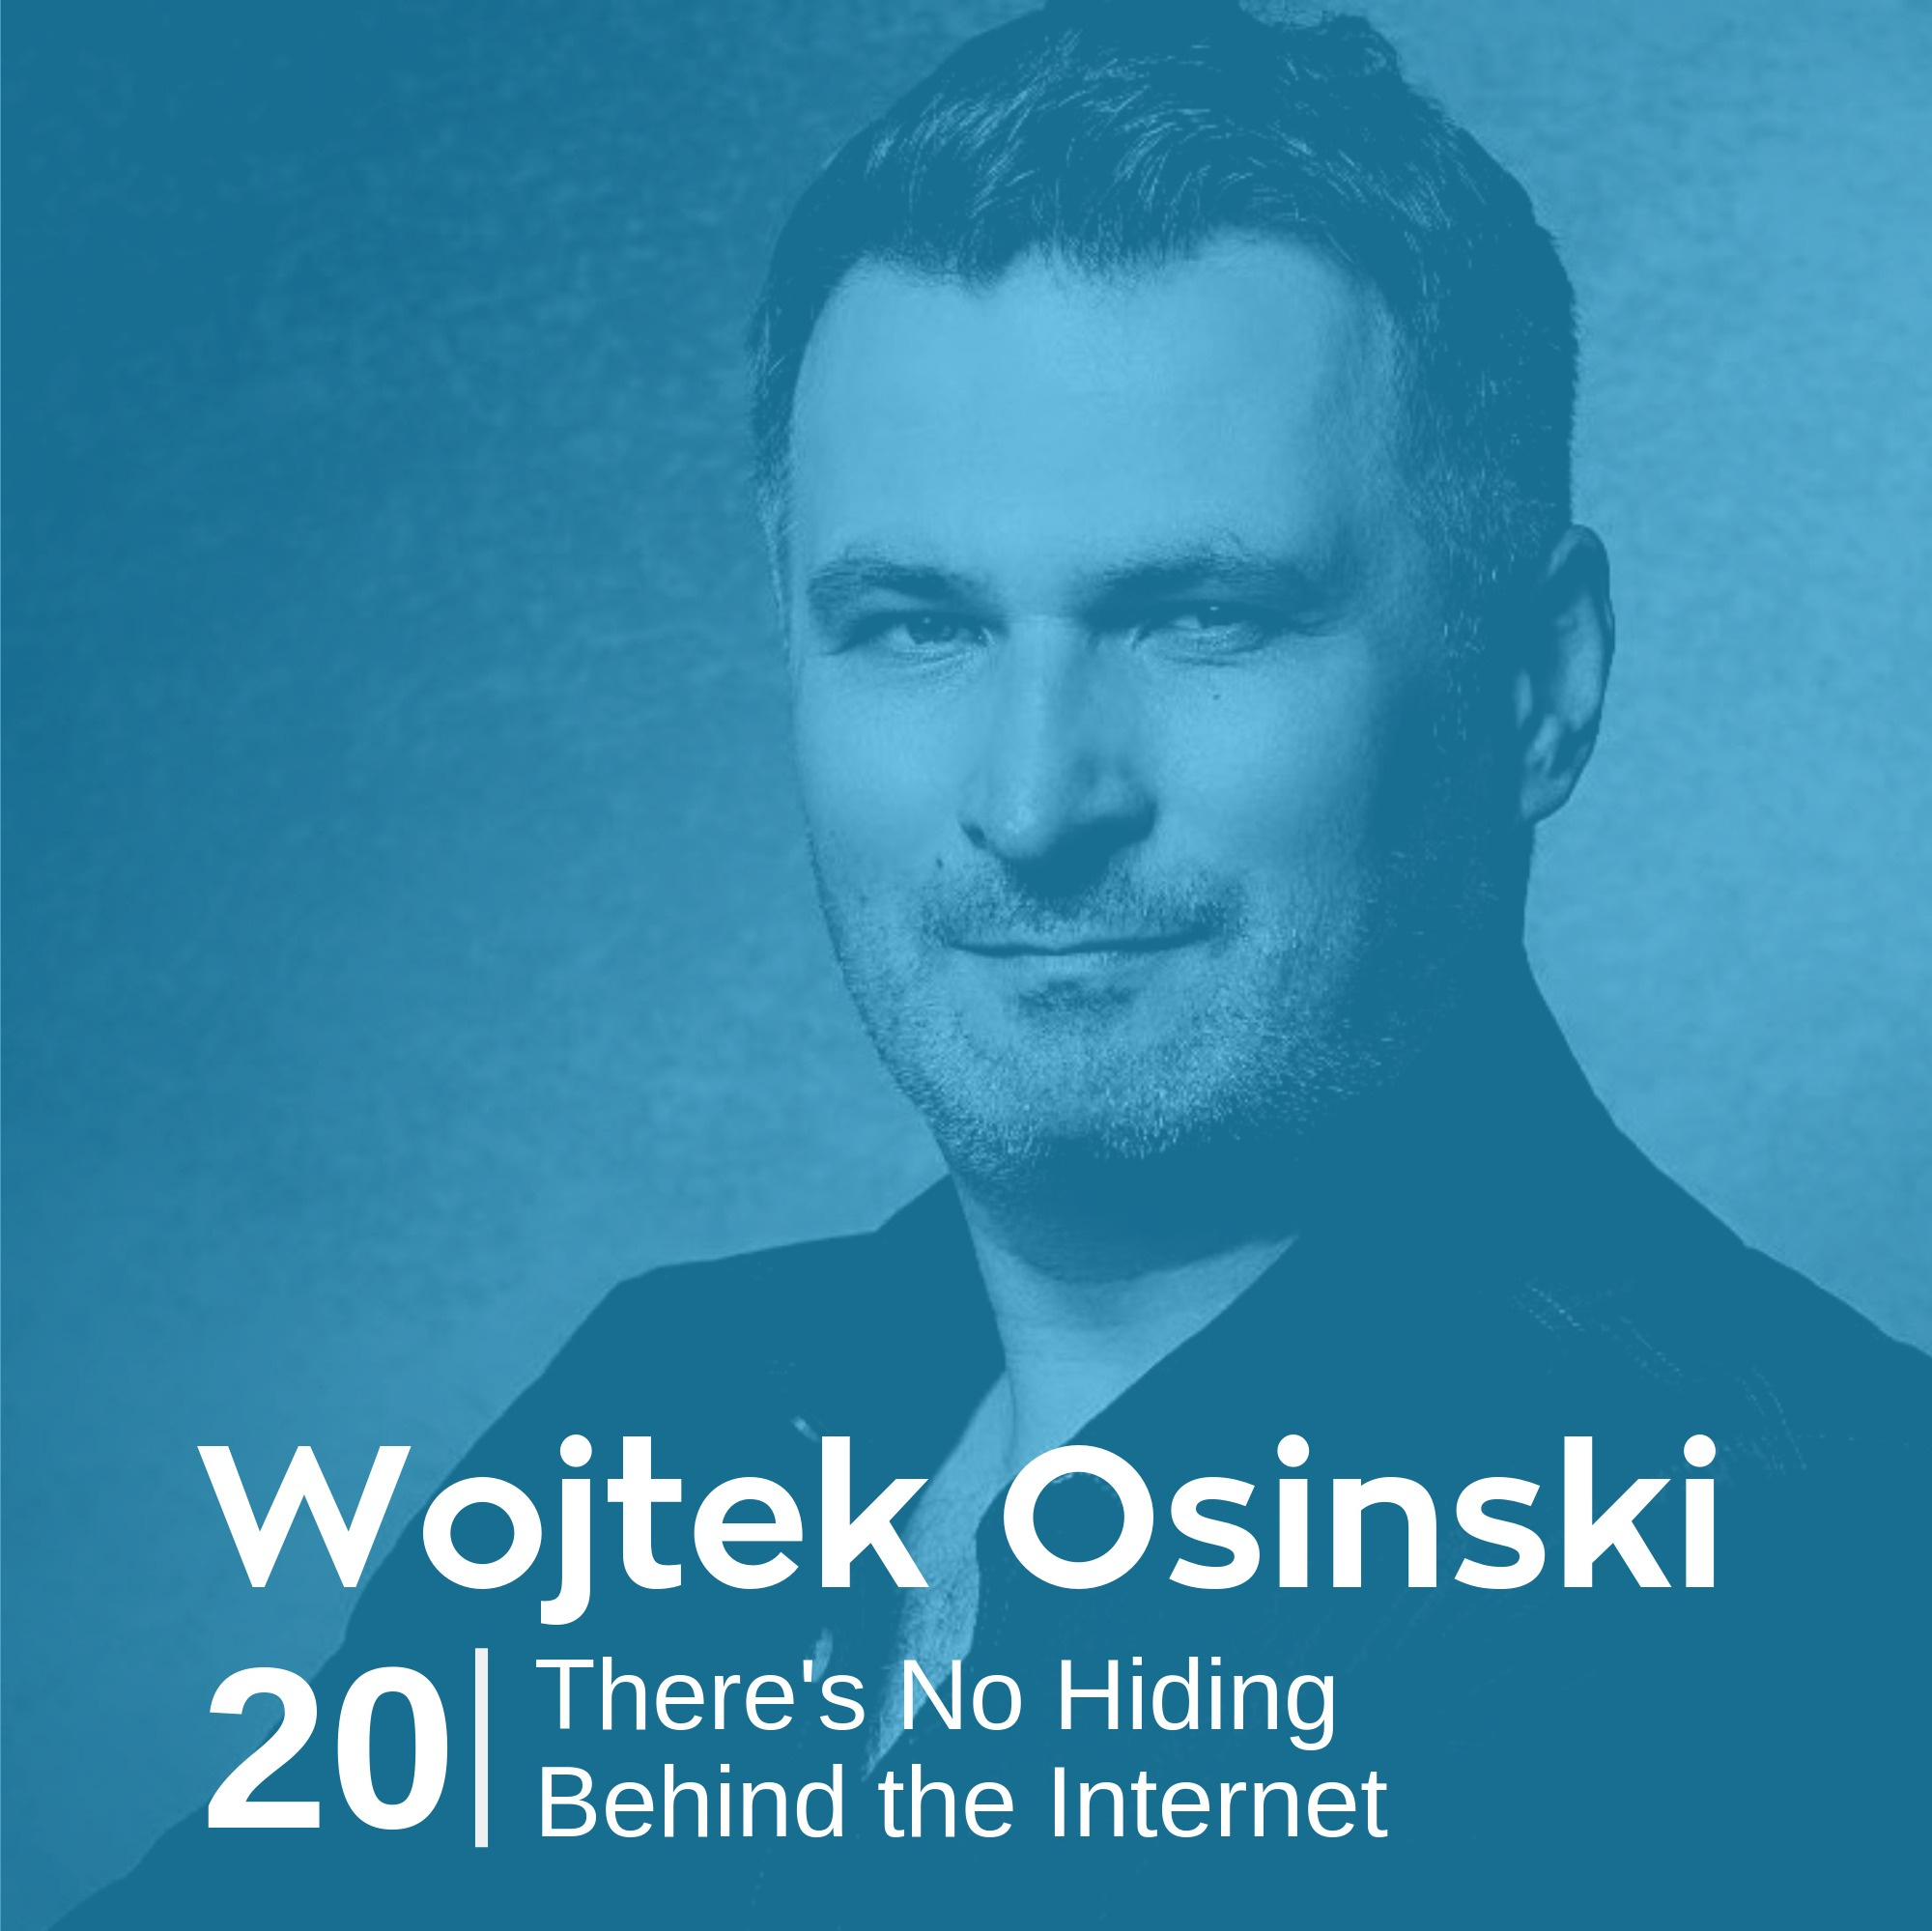 Ep 20. Wojtek Osinski - There's No Hiding Behind the Internet